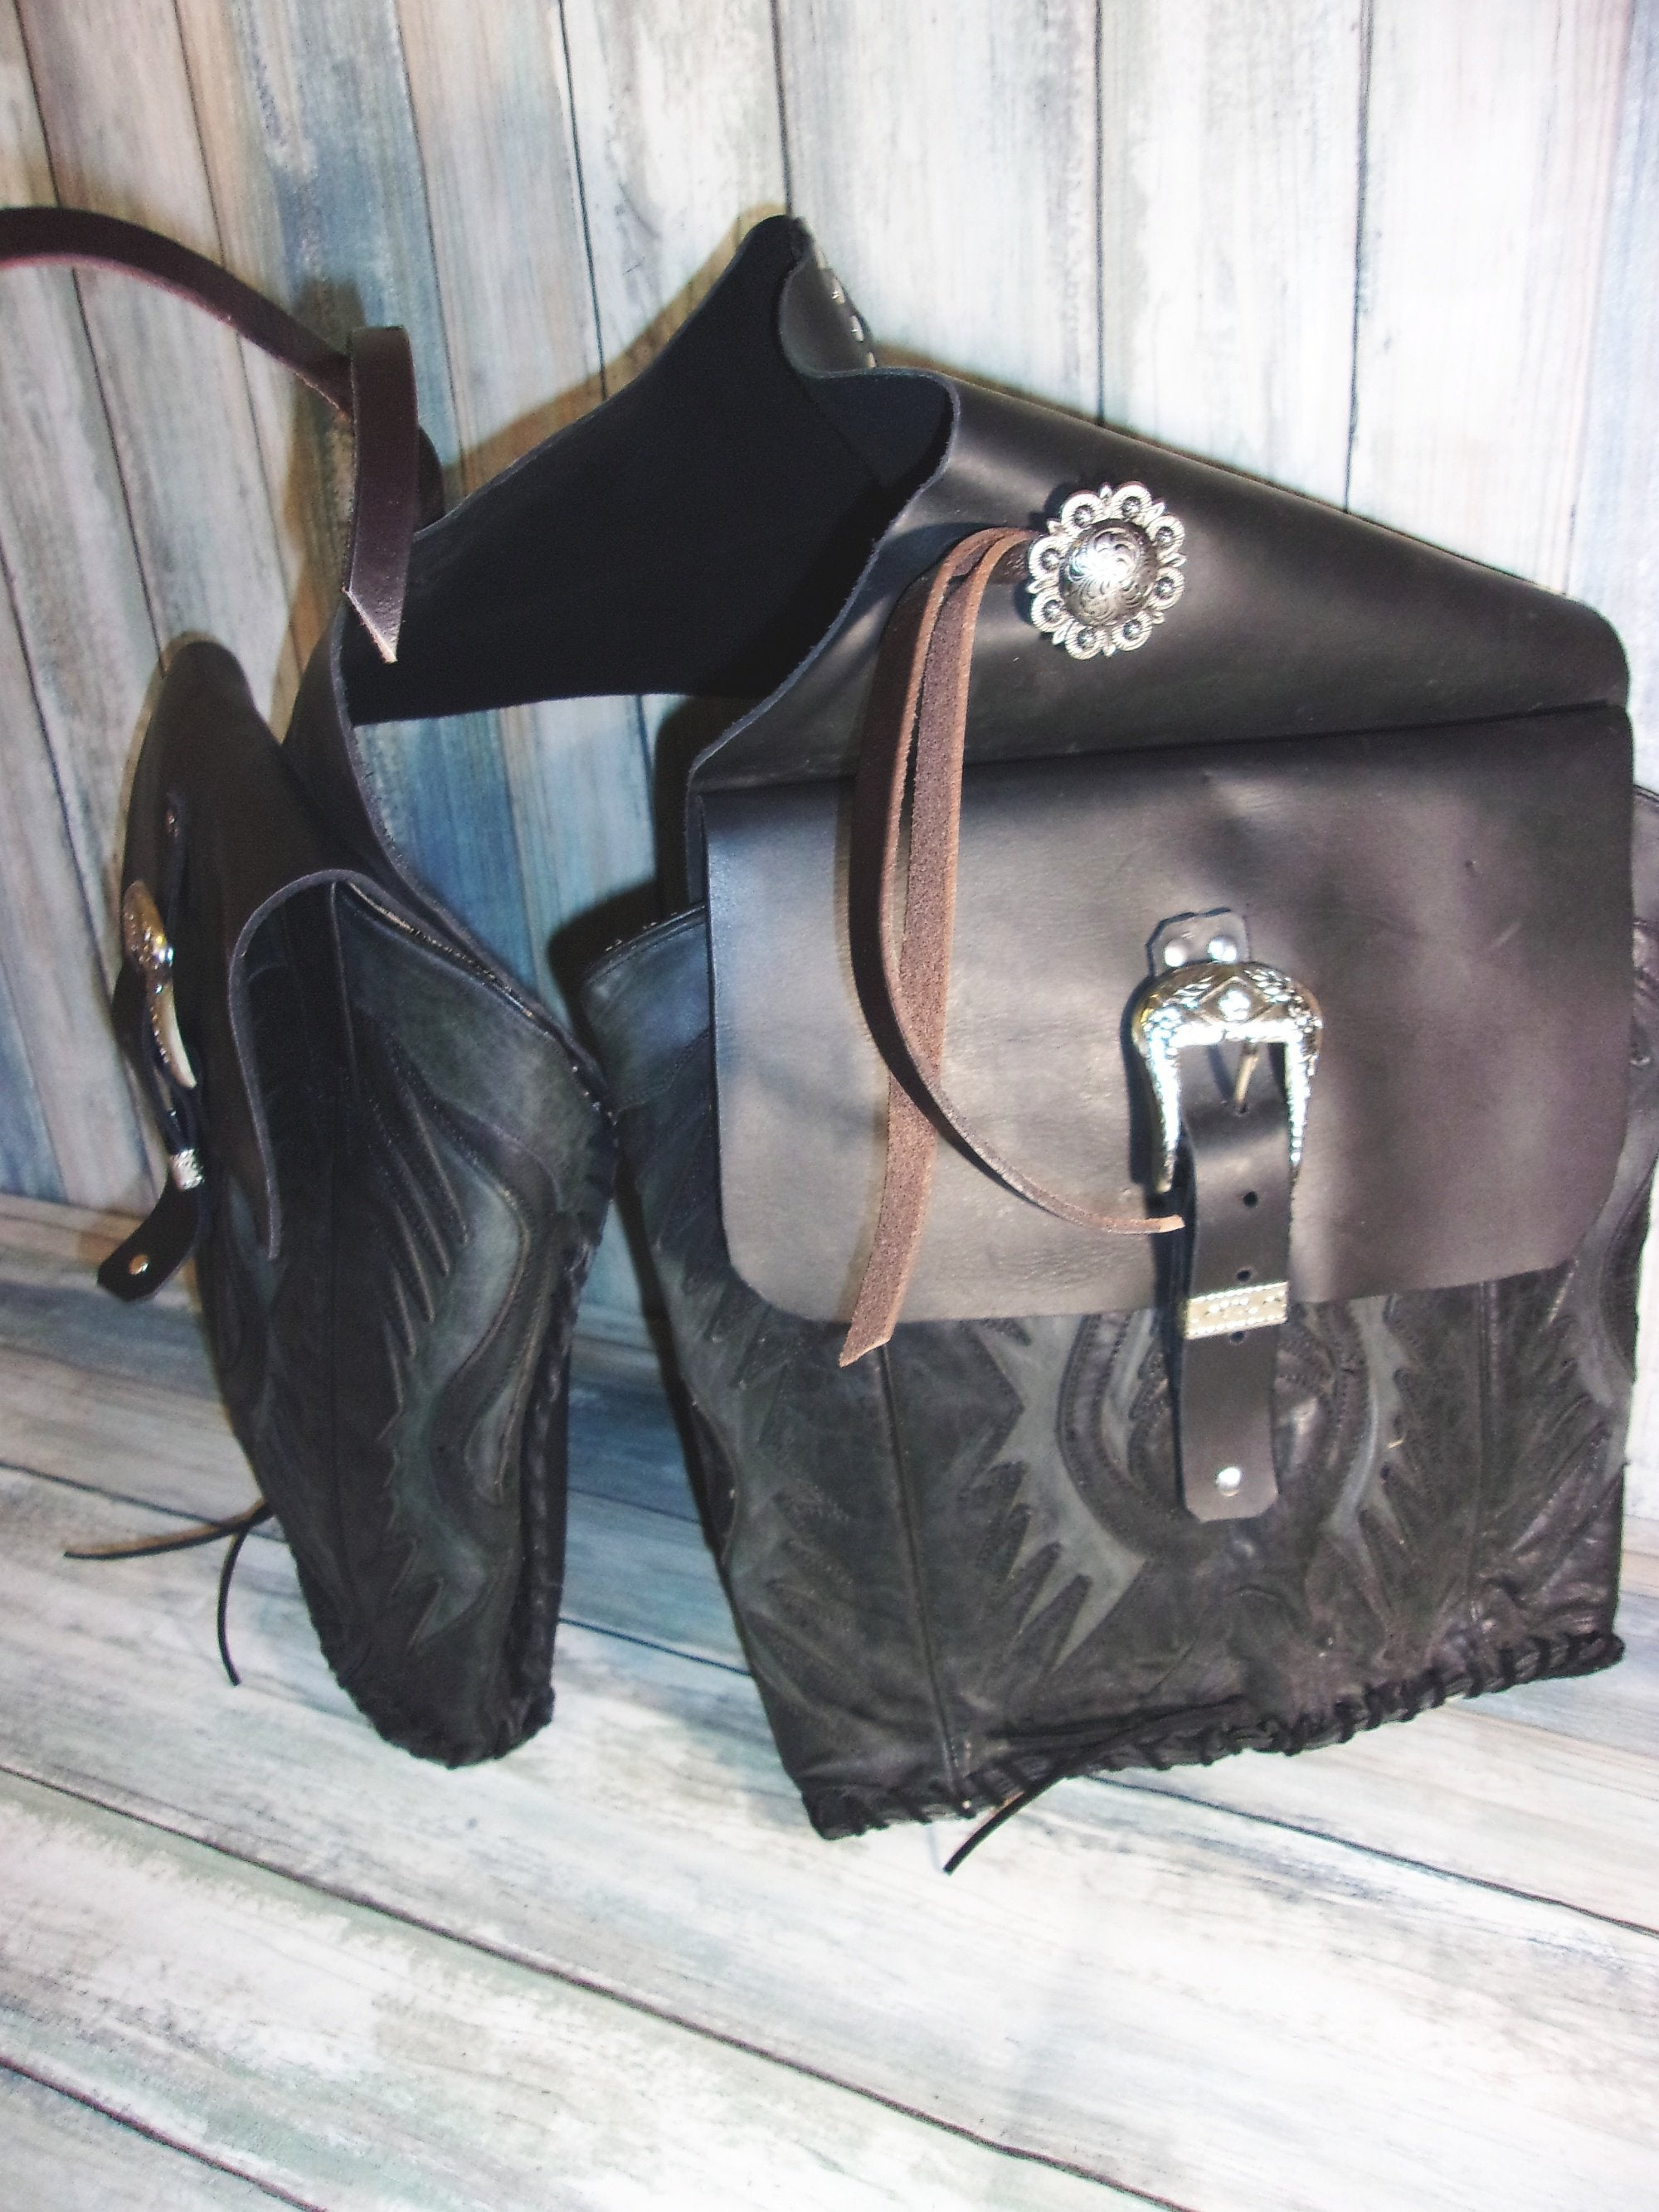 Black on Black Saddle-Bags - Distinctive Western Handbags, Purses and Totes